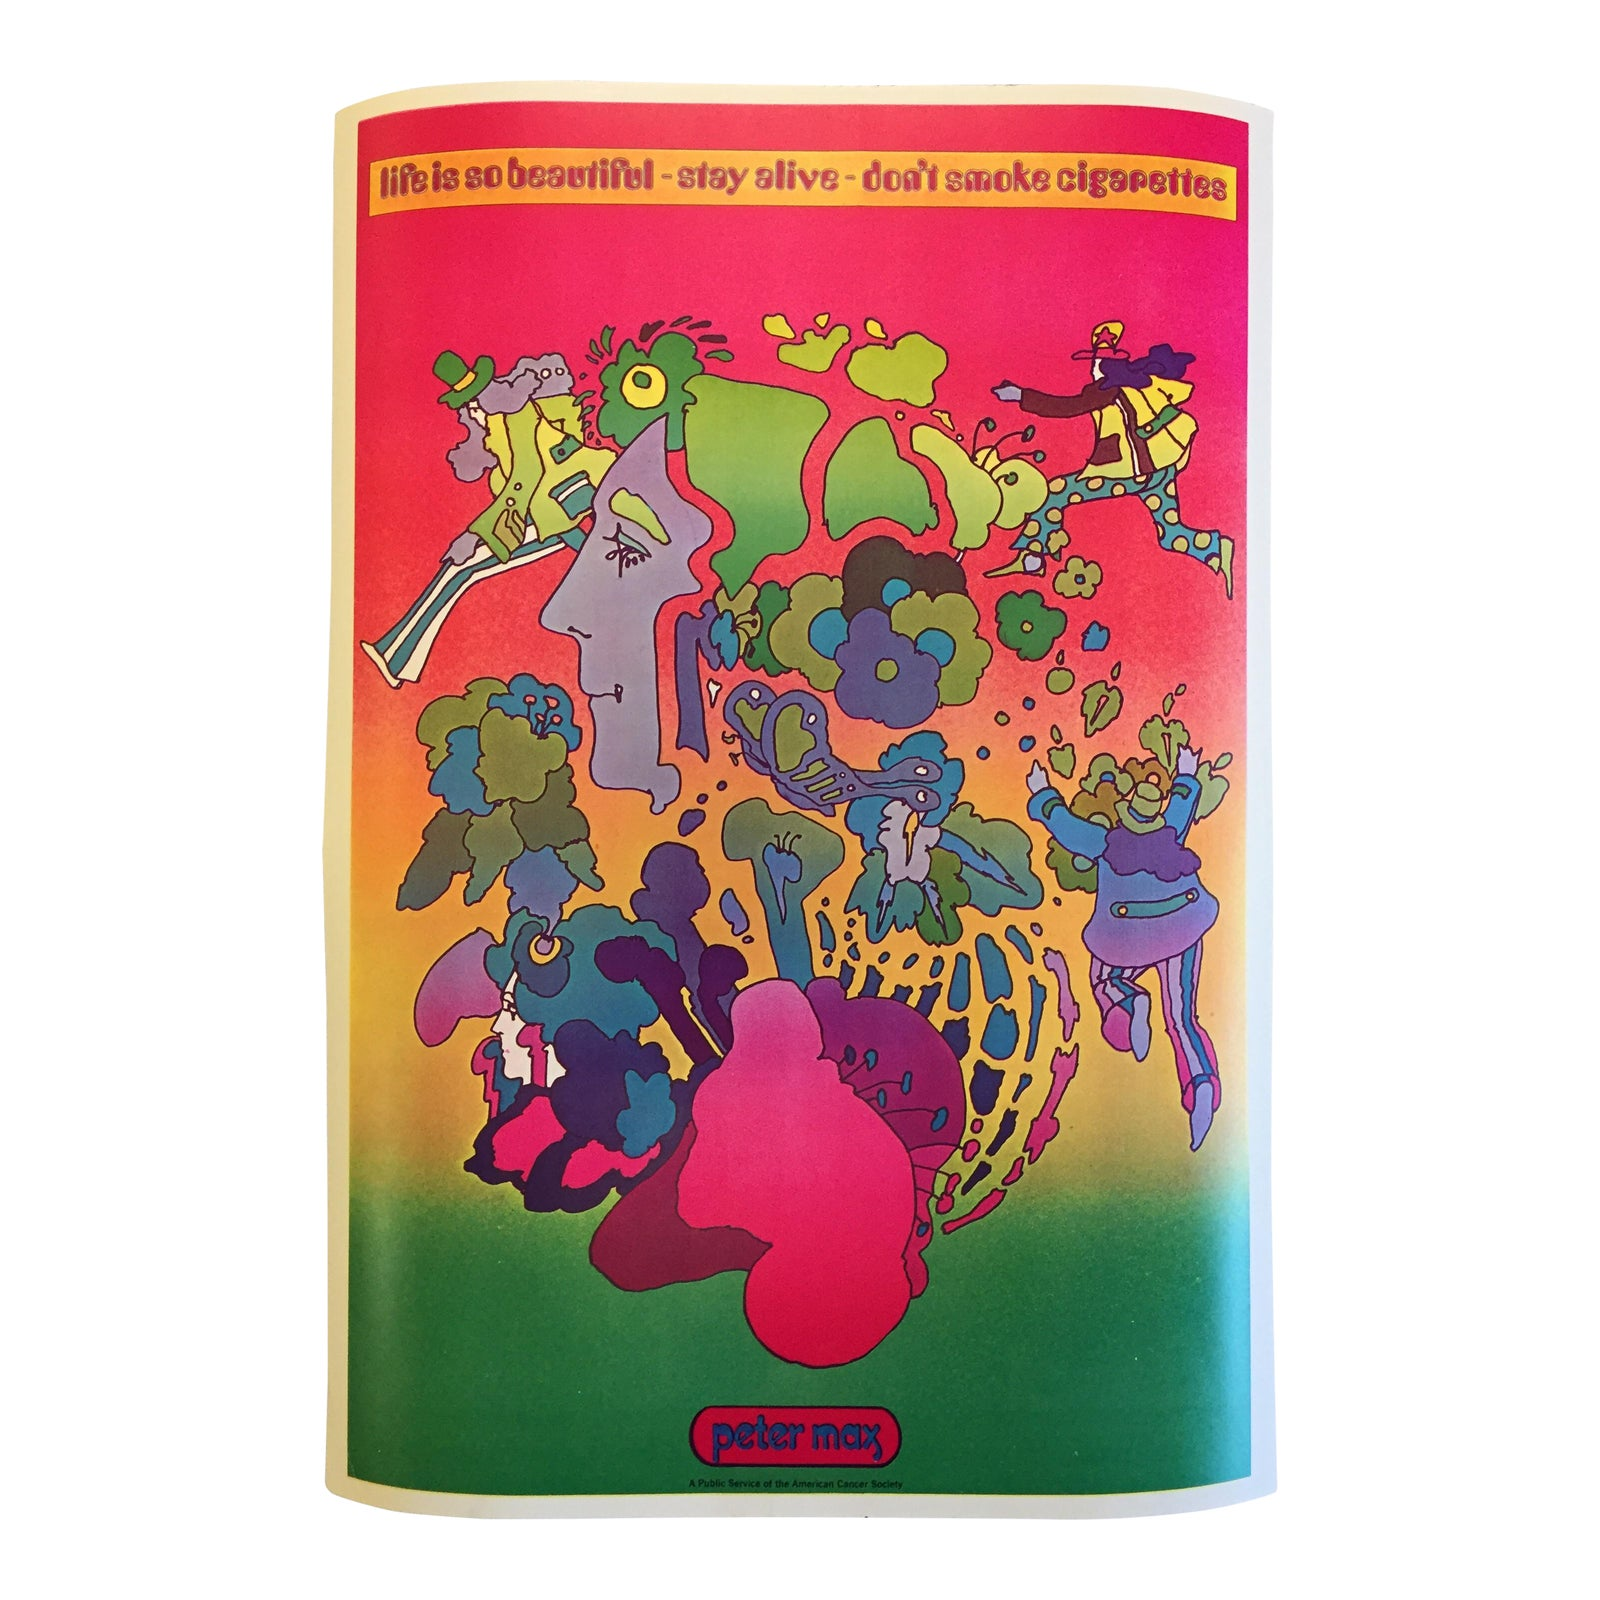 American Cancer Society Furniture Pick Up: Vintage Peter Max American Cancer Society Poster